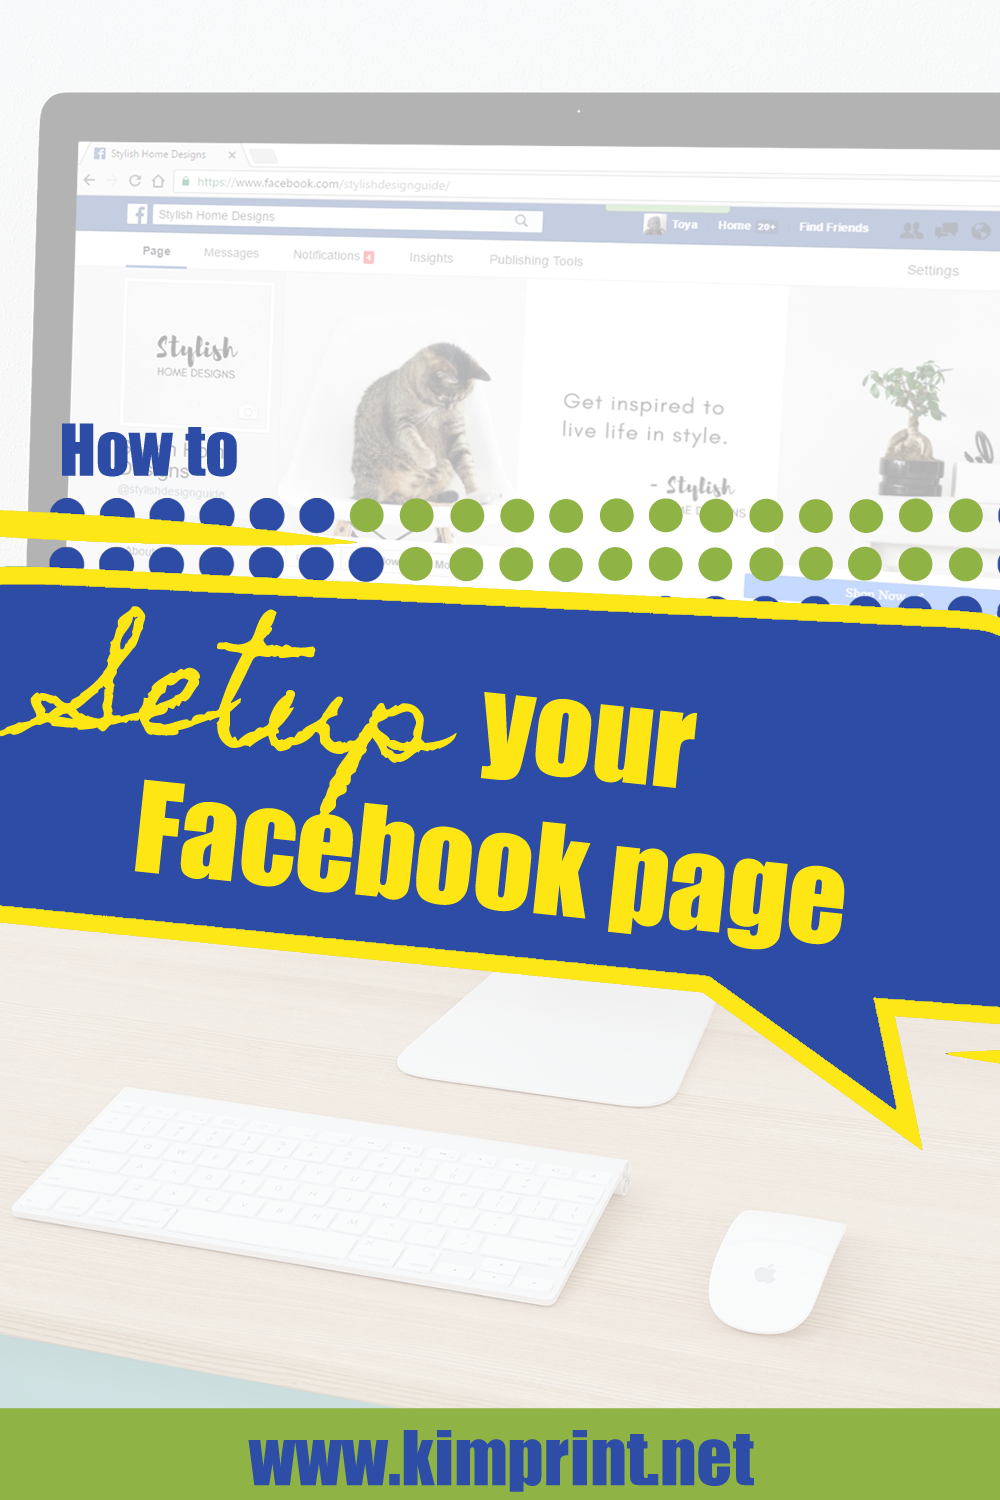 small businesses how to get your Facebook page setup